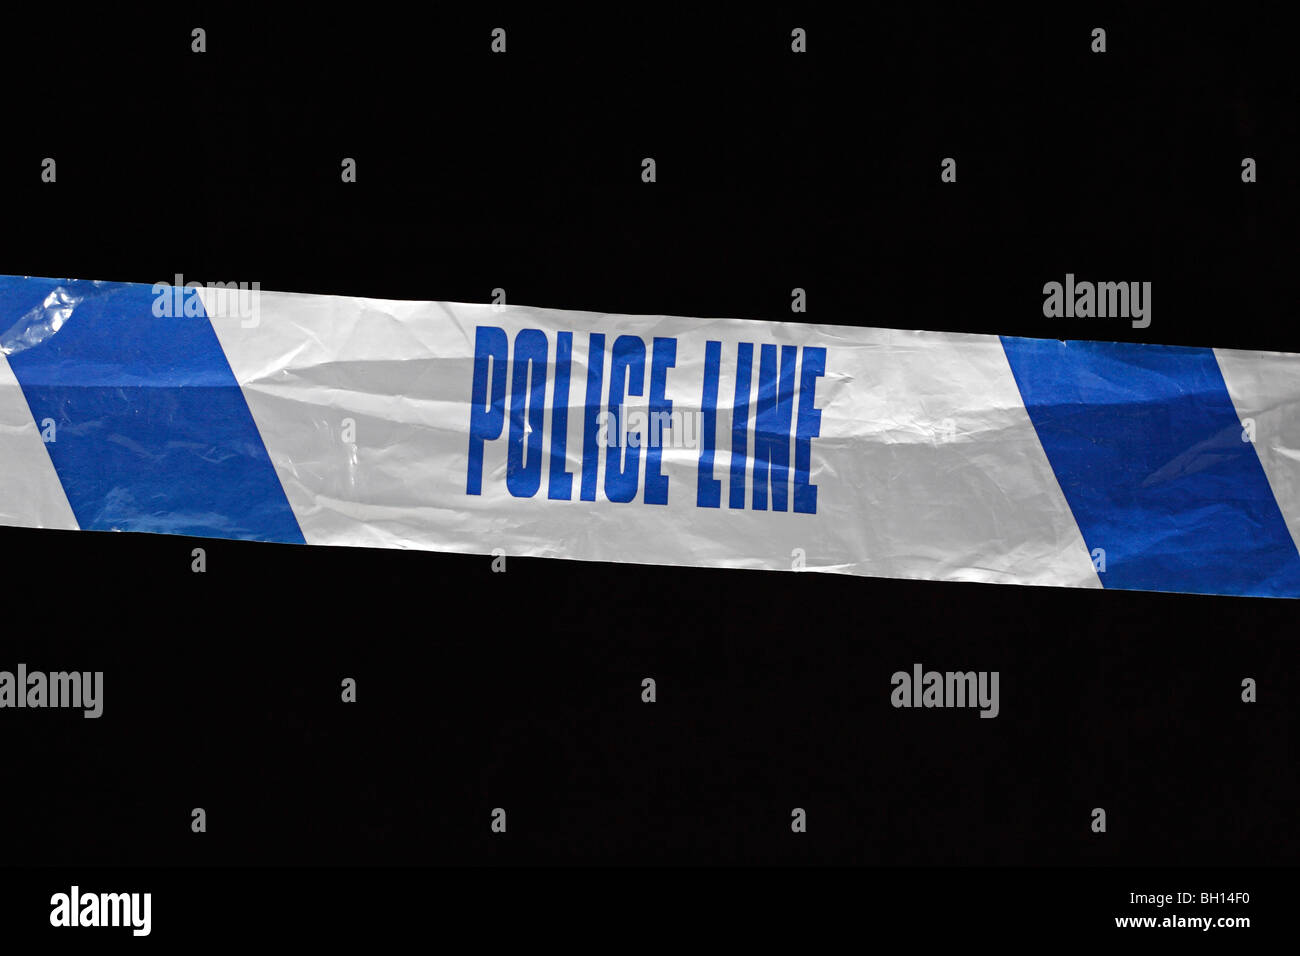 Police Line (Do Not Cross) tape from the United Kingdom (UK). Jan 2010 - Stock Image